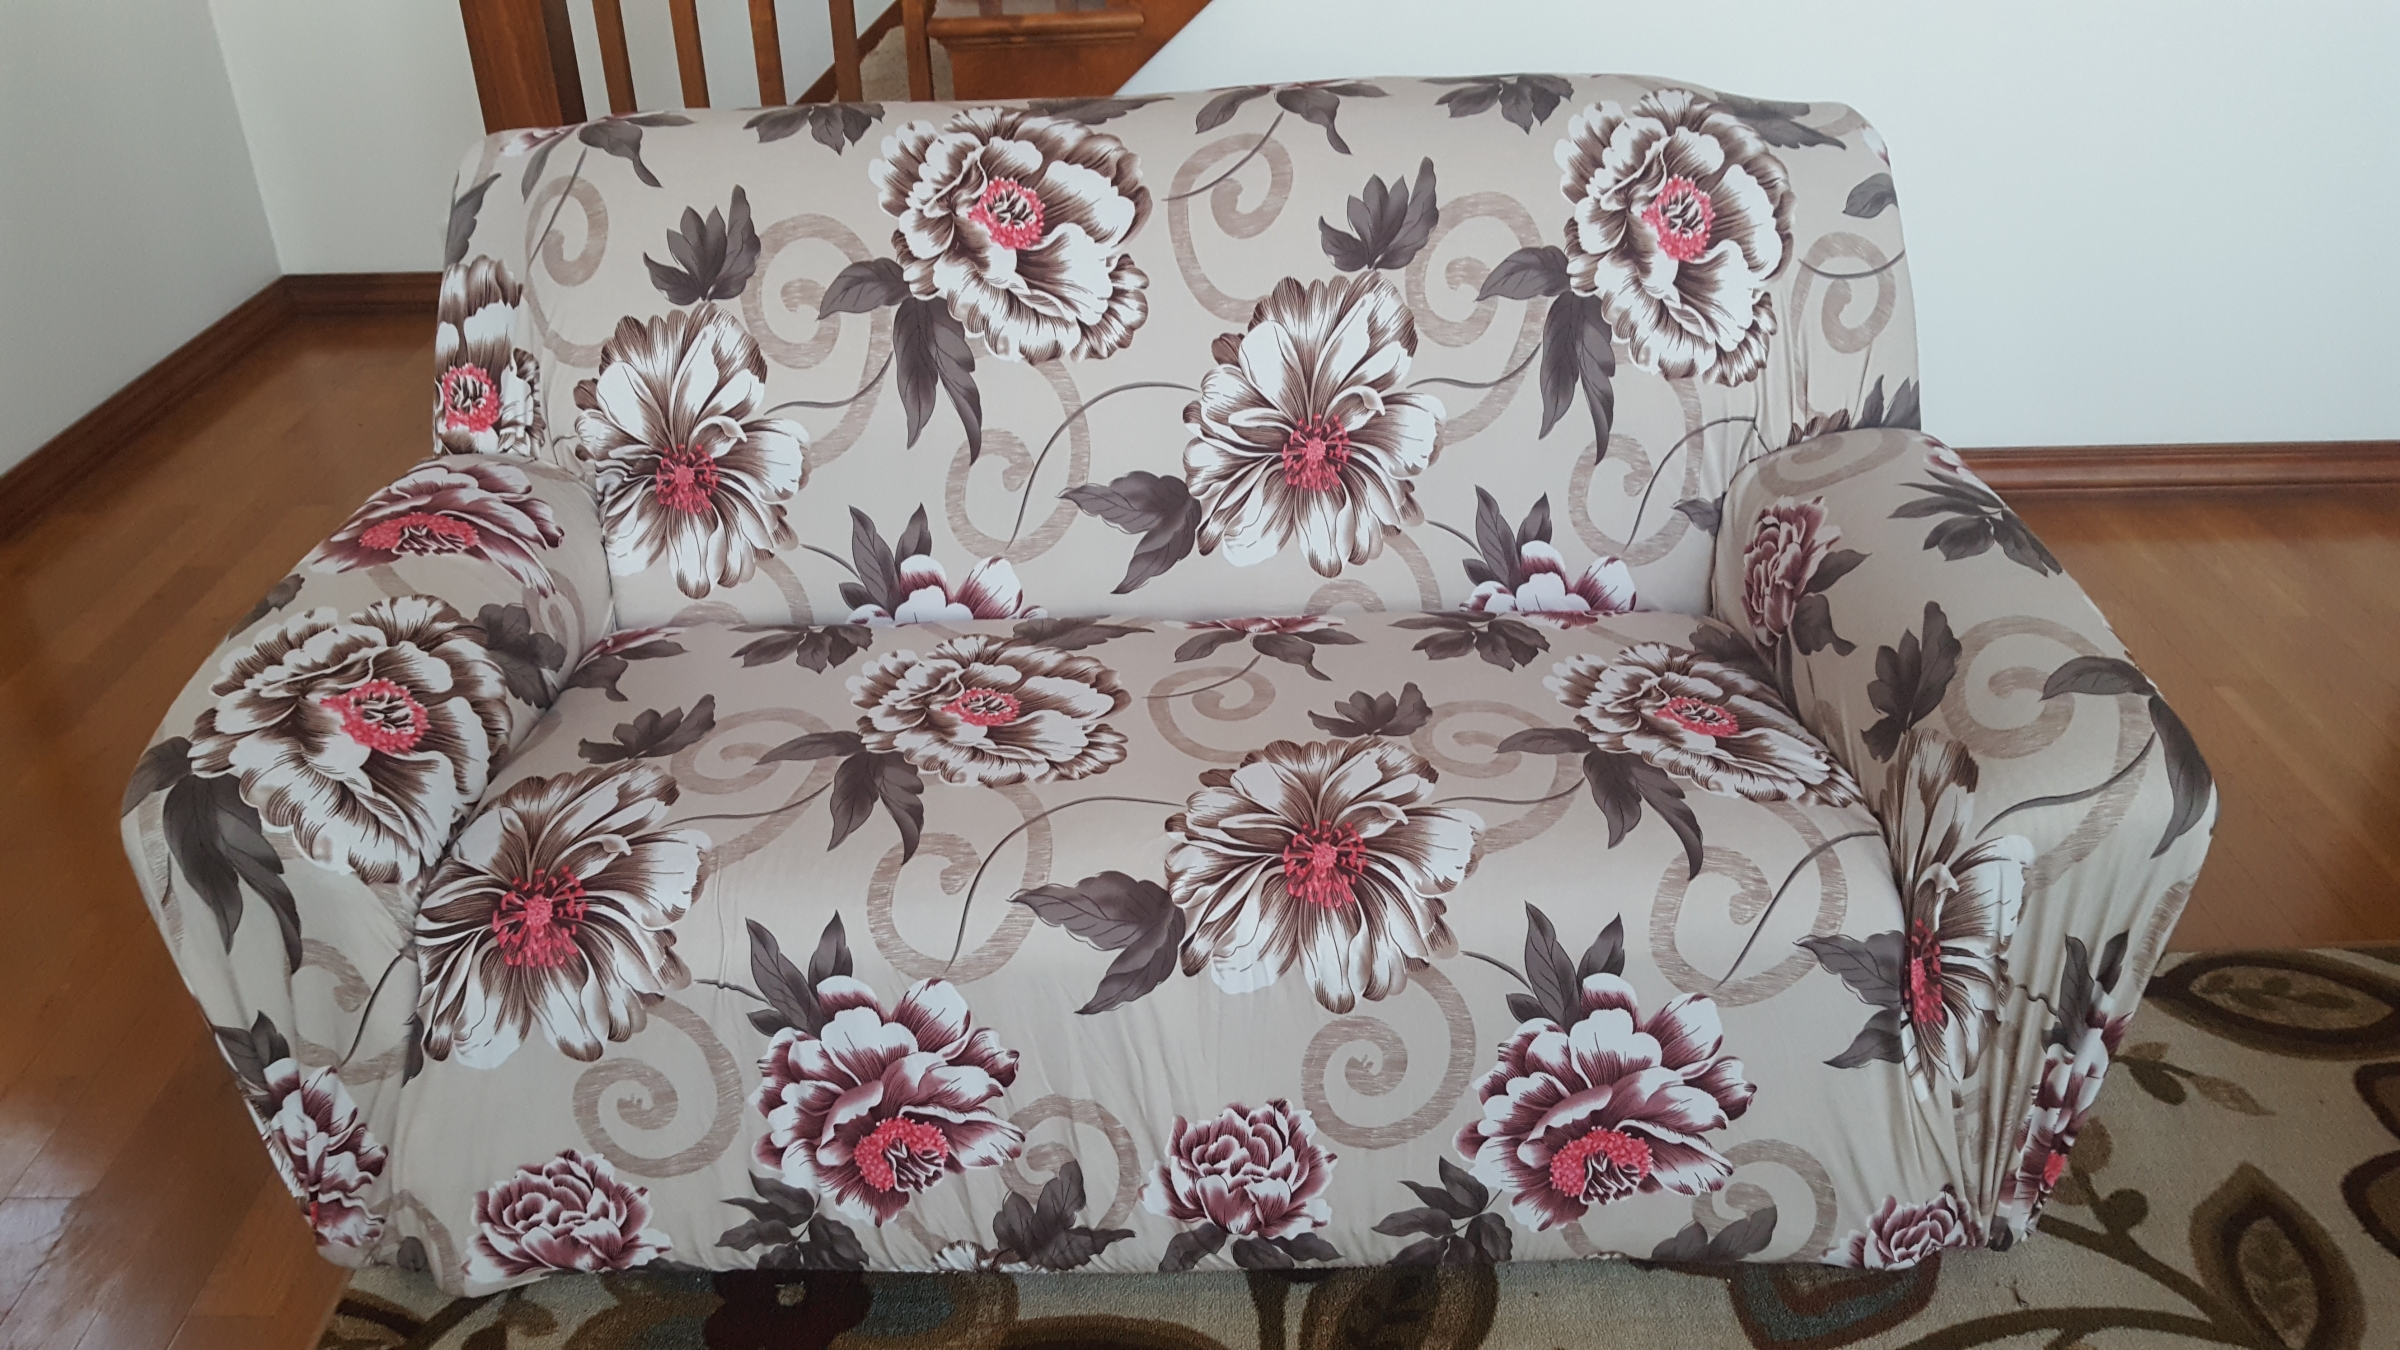 Love my new sofa cover